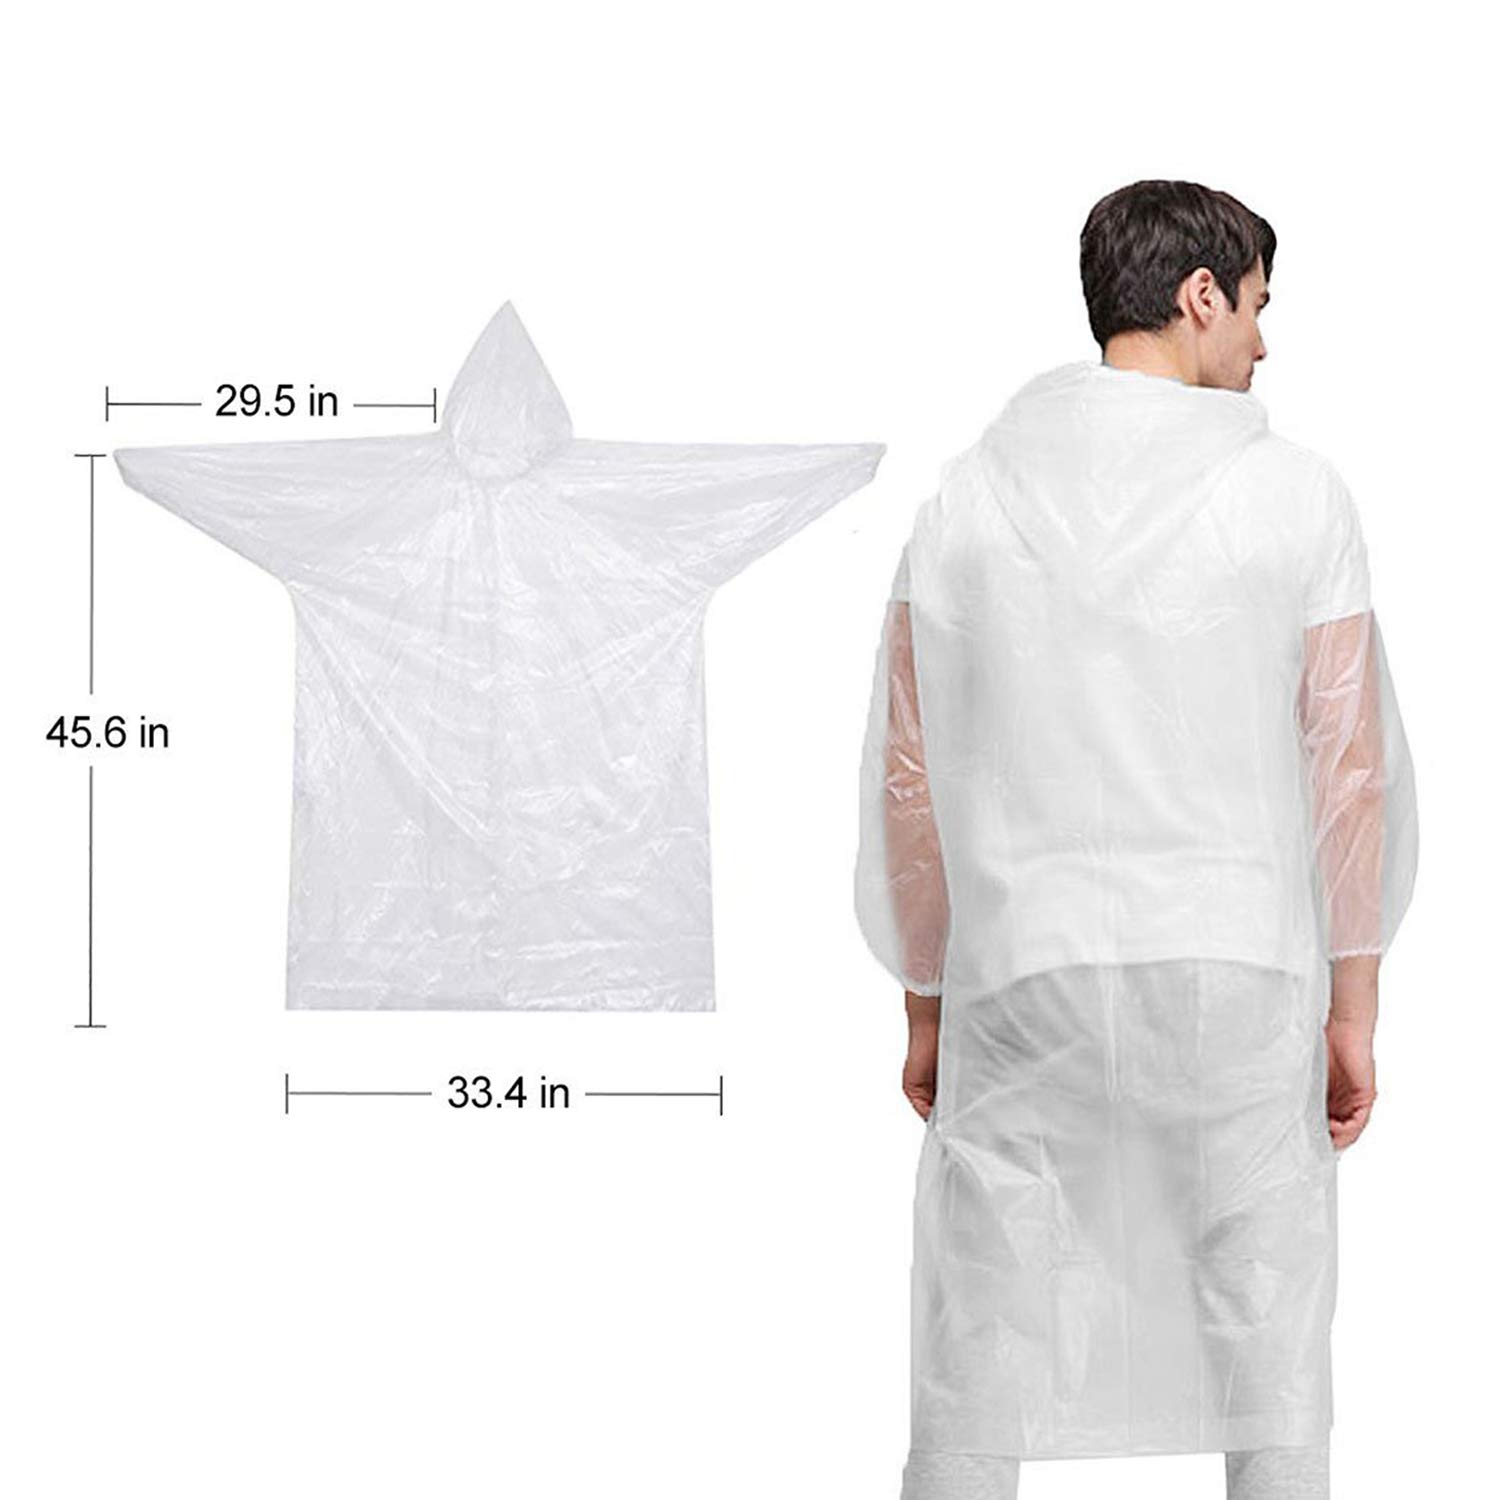 GYORGKSHI Disposable Rain Ponchos 6 Pack Emergency Lightweight Poncho for Men Women Clear Adult Raincoat with Drawstring Hood